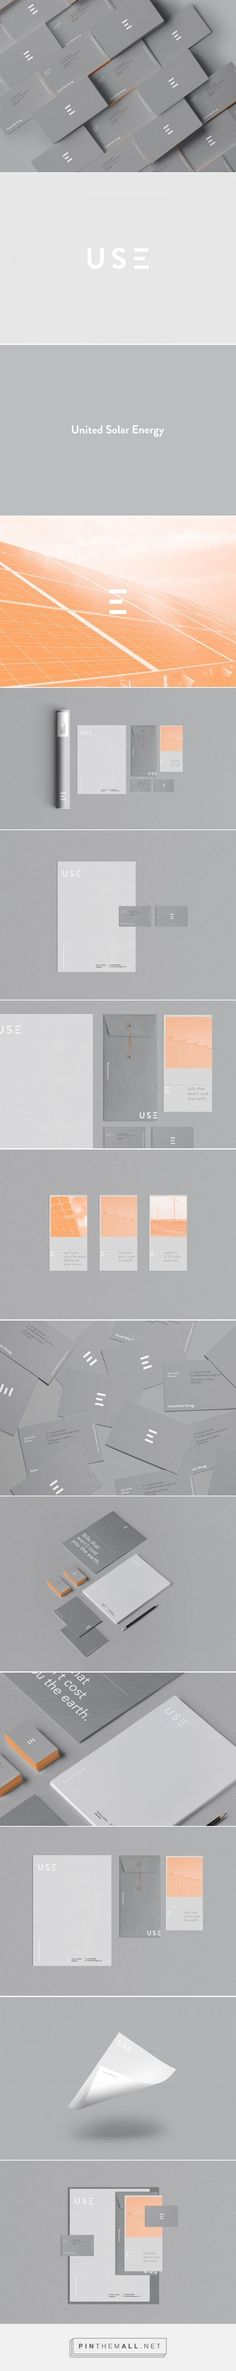 (60) U-S-E on Behance | Identity | Pinterest / Brand Identity / Branding / Brand / Design / Ideas / Inspiration / Business Cards / Solar Energy / Grey / Minimal Logo / Minimalist / Corporate / Unique / Energy Logo / Modern / Flyer / Environmental